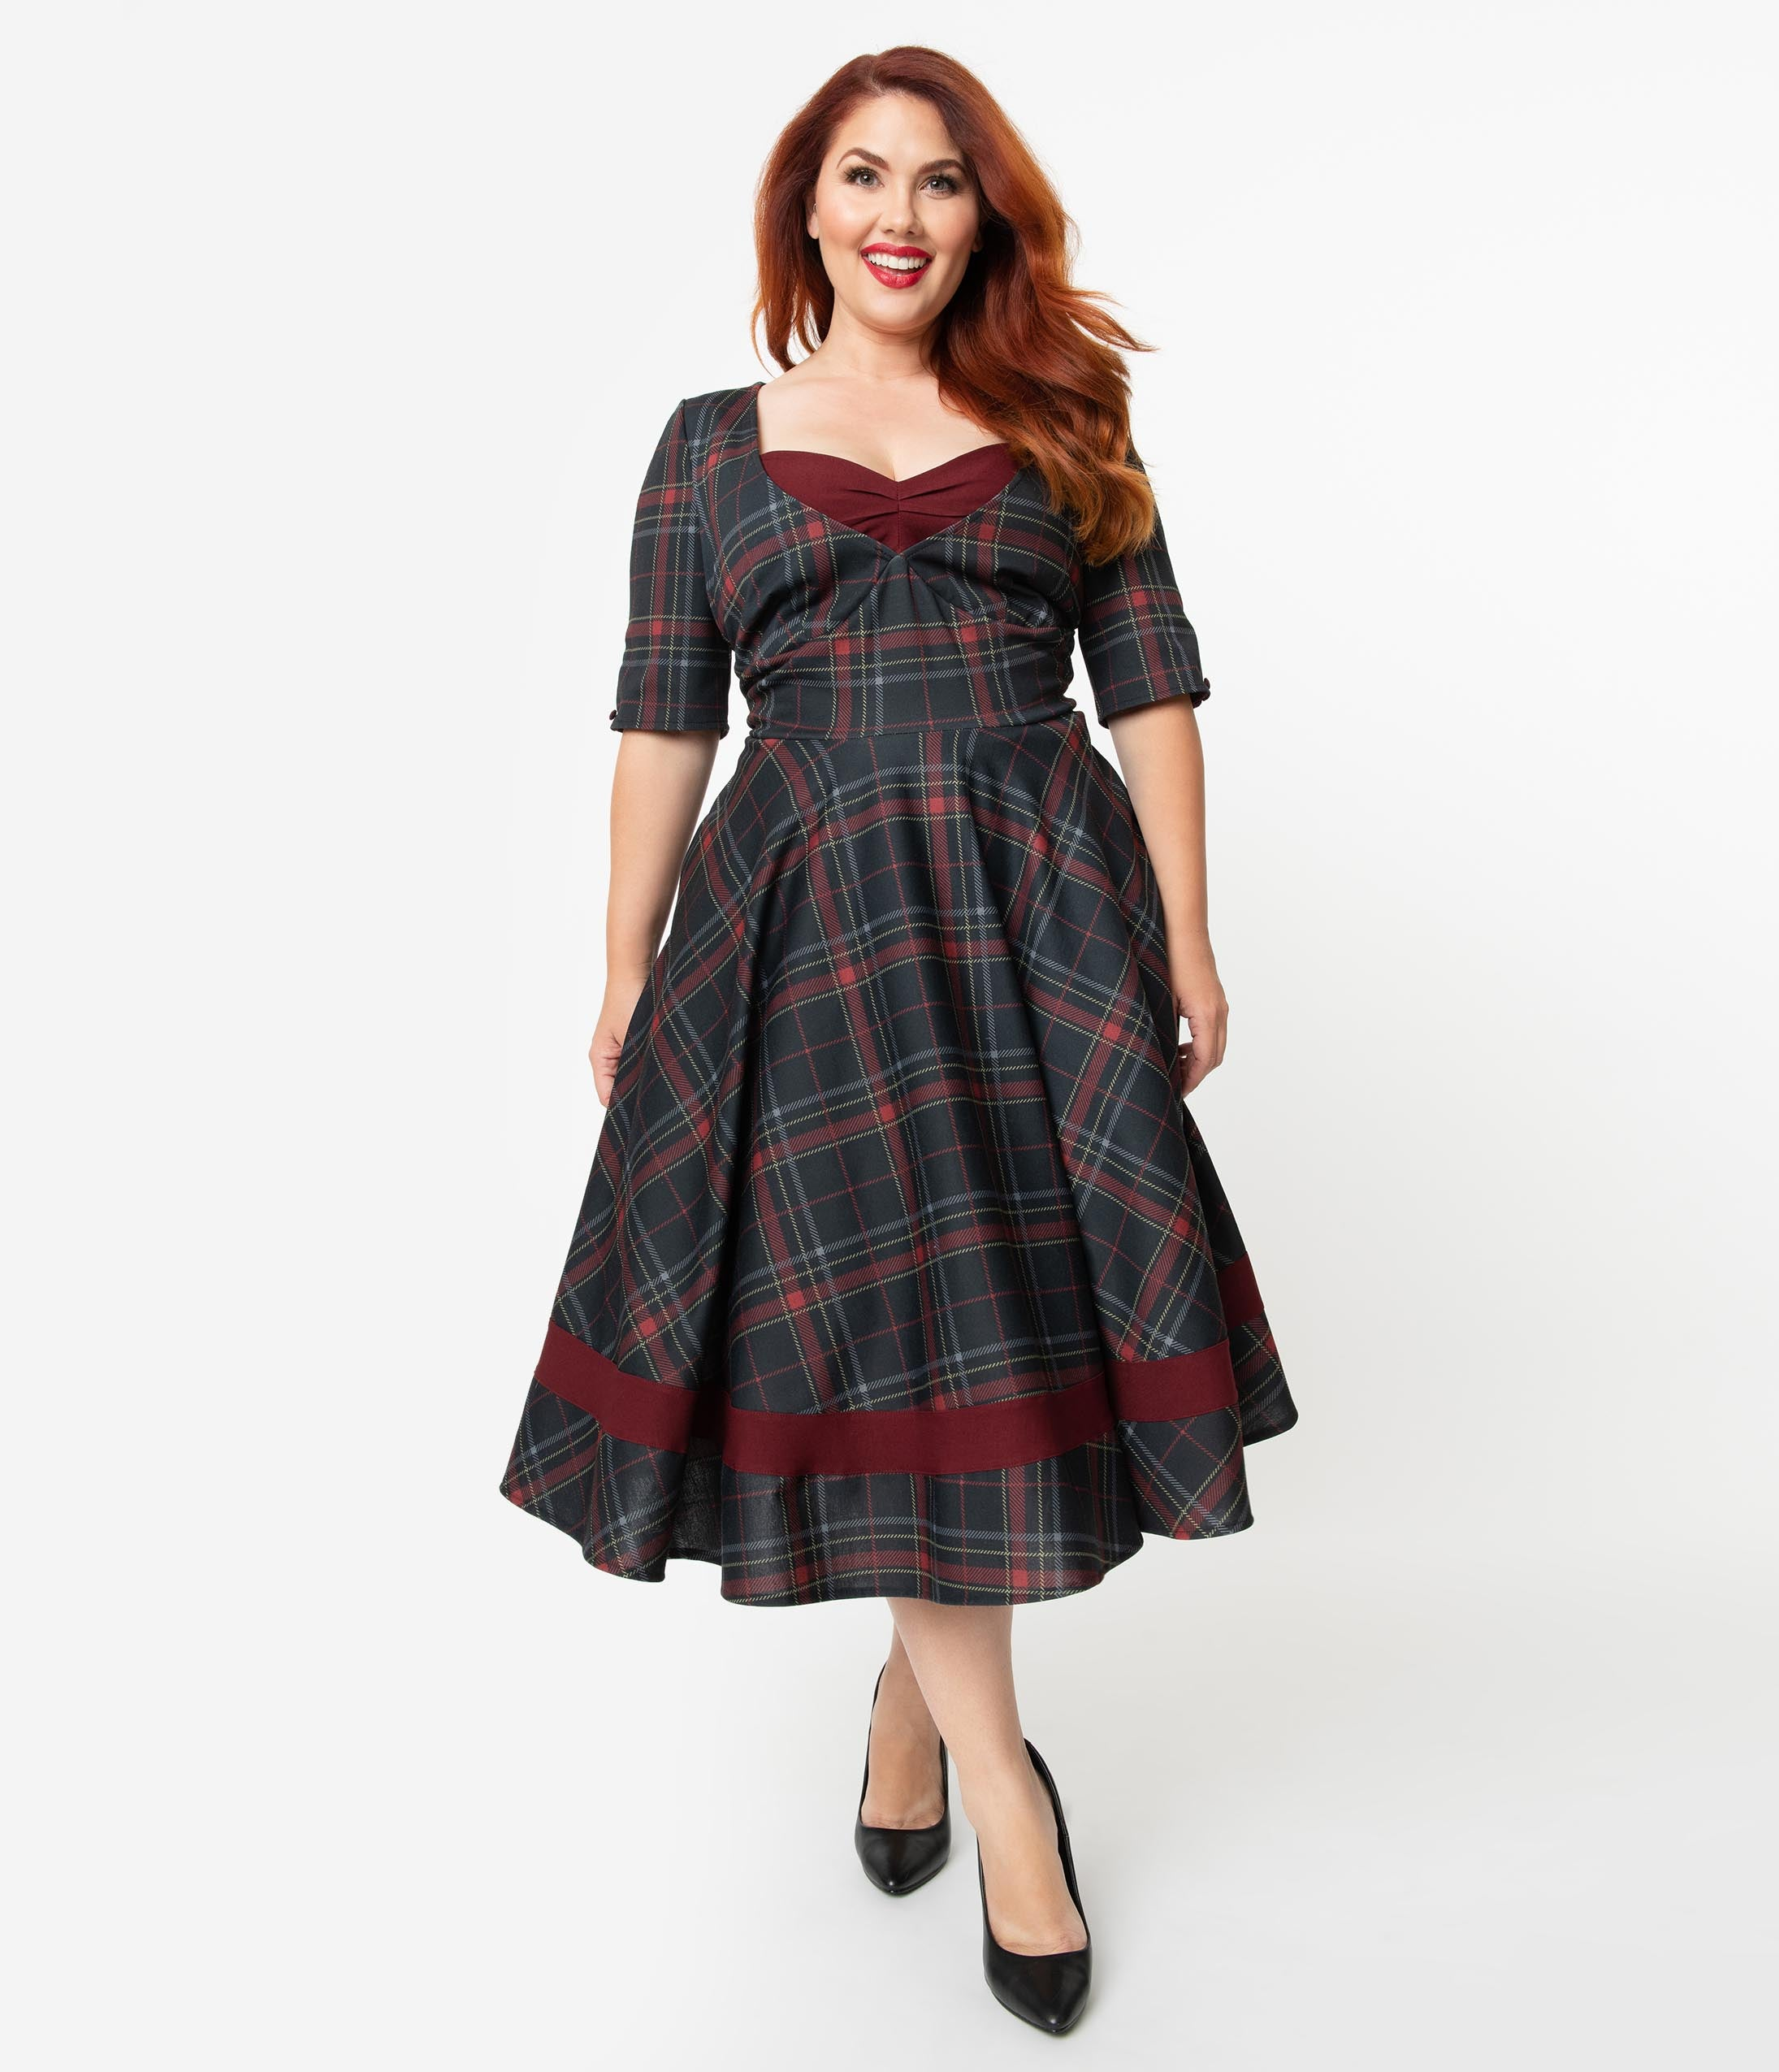 1950s Dresses, 50s Dresses | 1950s Style Dresses Unique Vintage Plus Size 1950S Style Burgundy  Black Plaid Sleeved Serena Swing Dress $110.00 AT vintagedancer.com